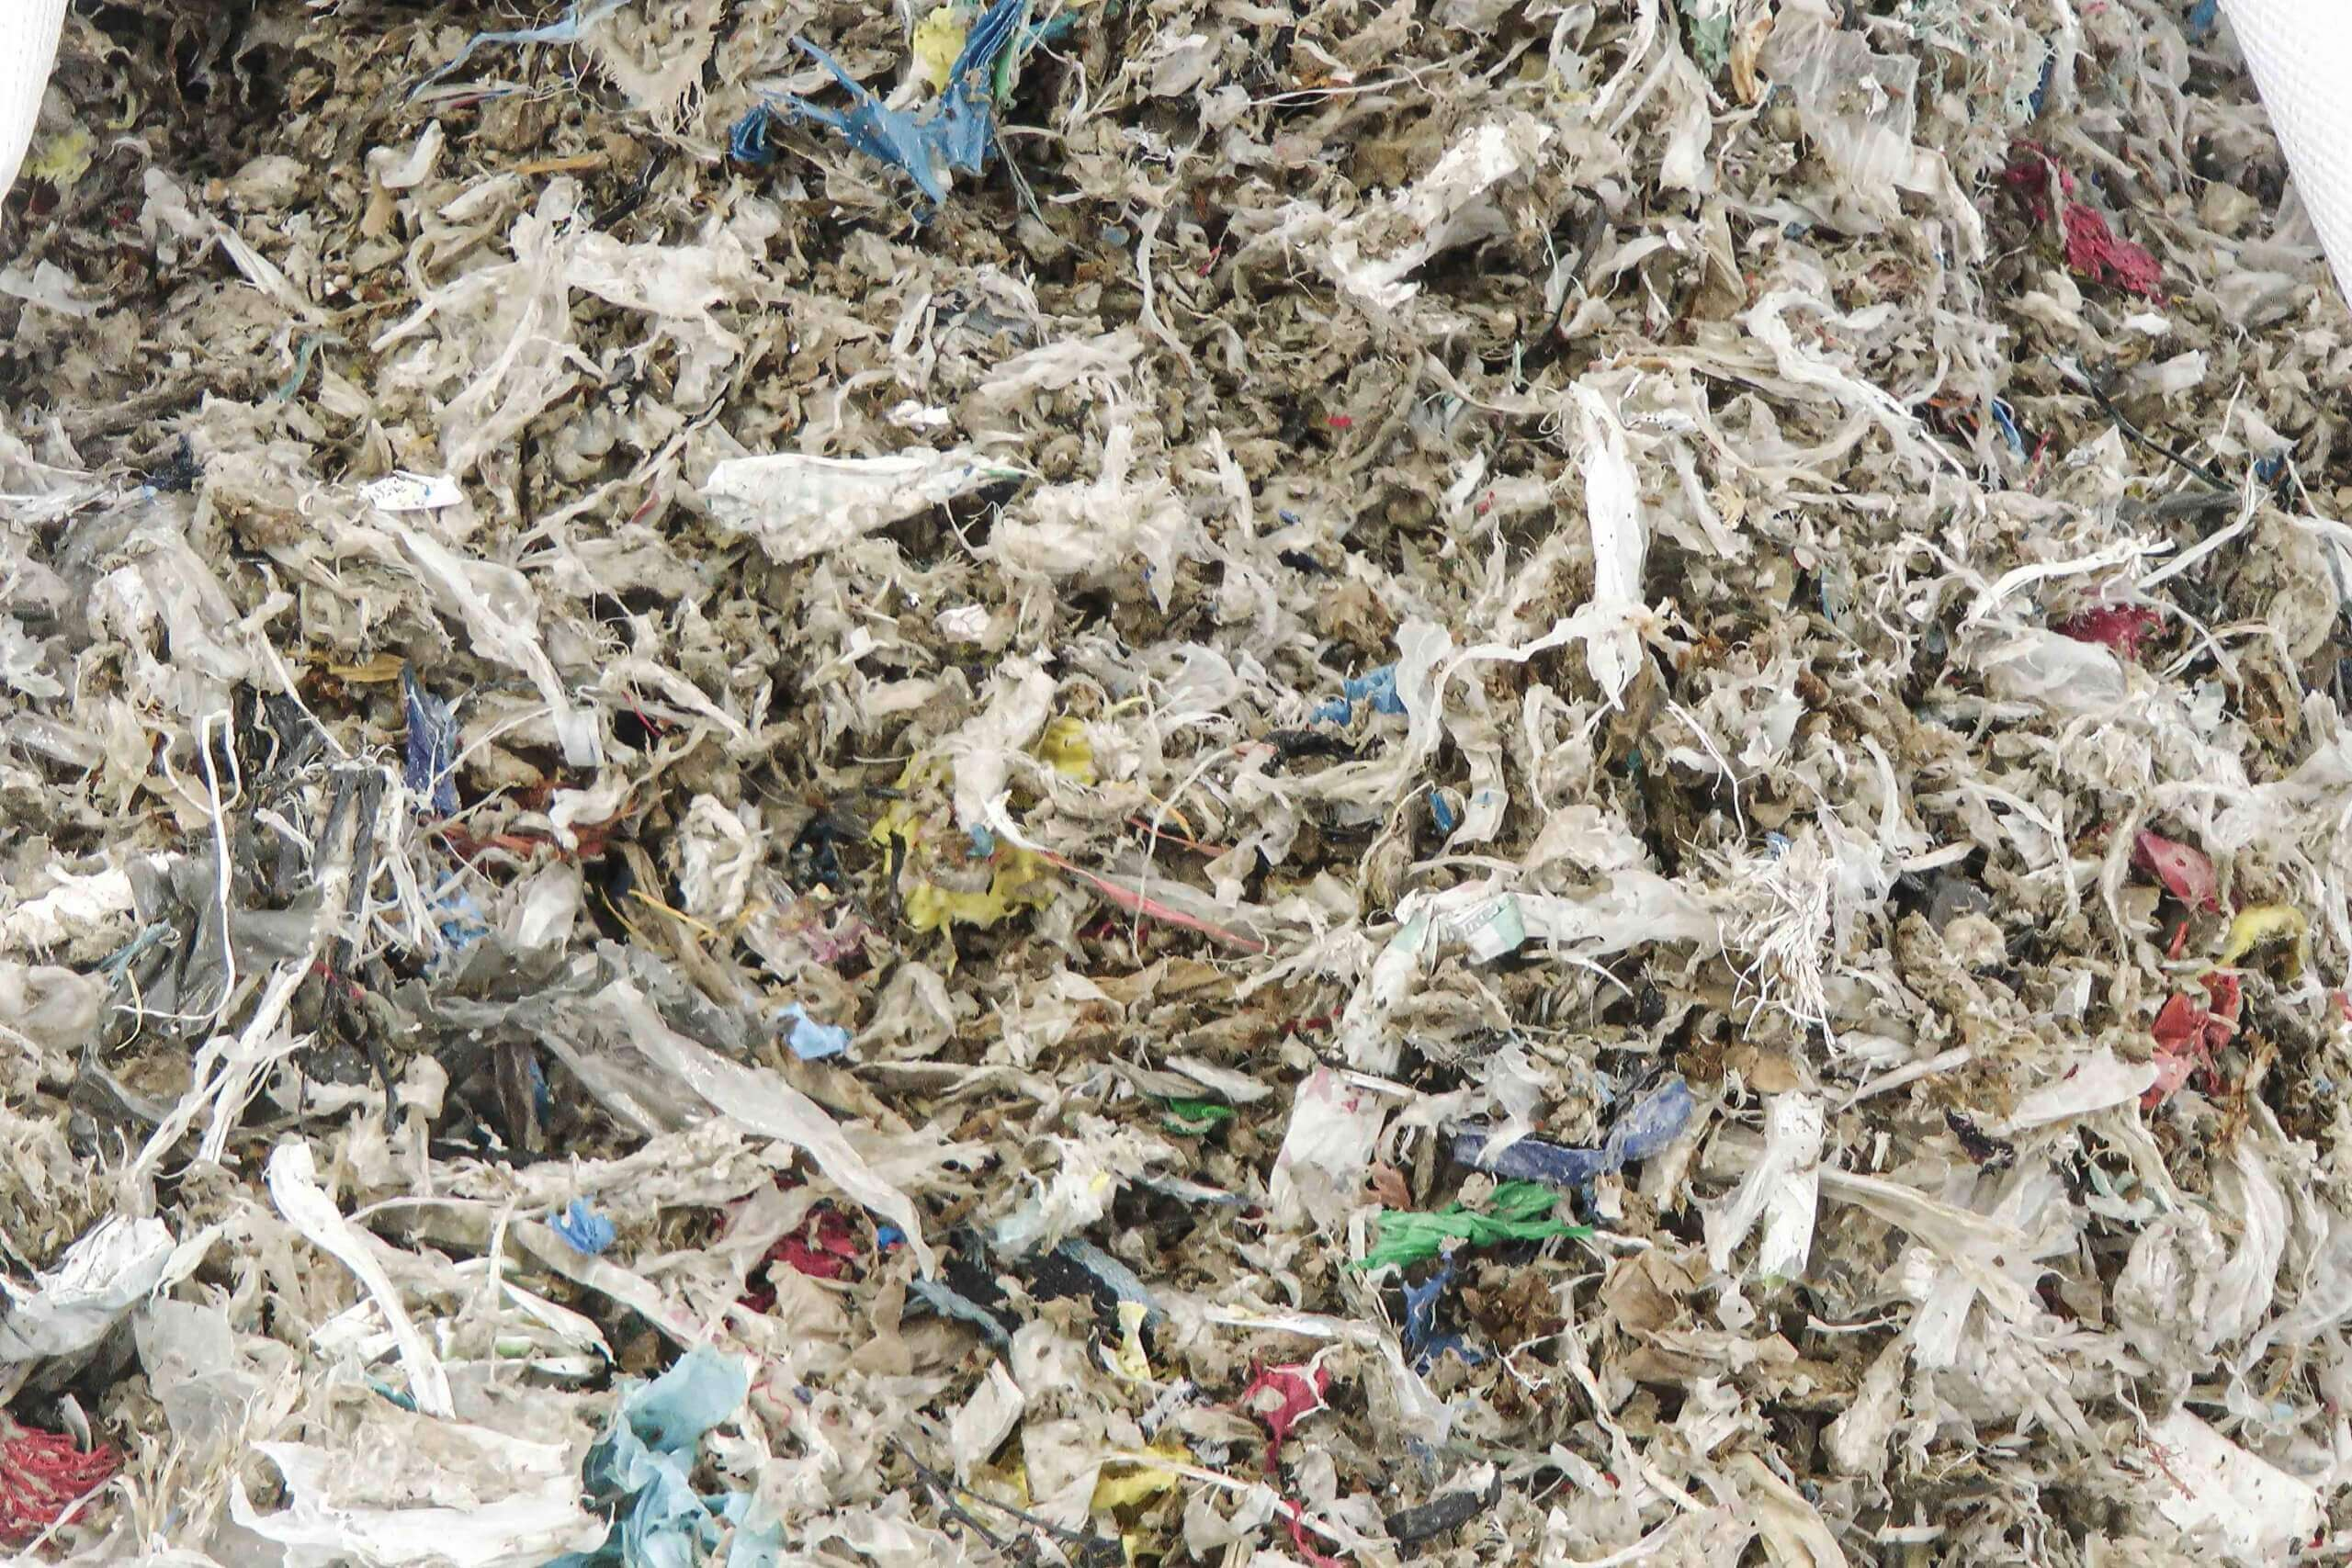 Pulper waste can be recycled after shredding